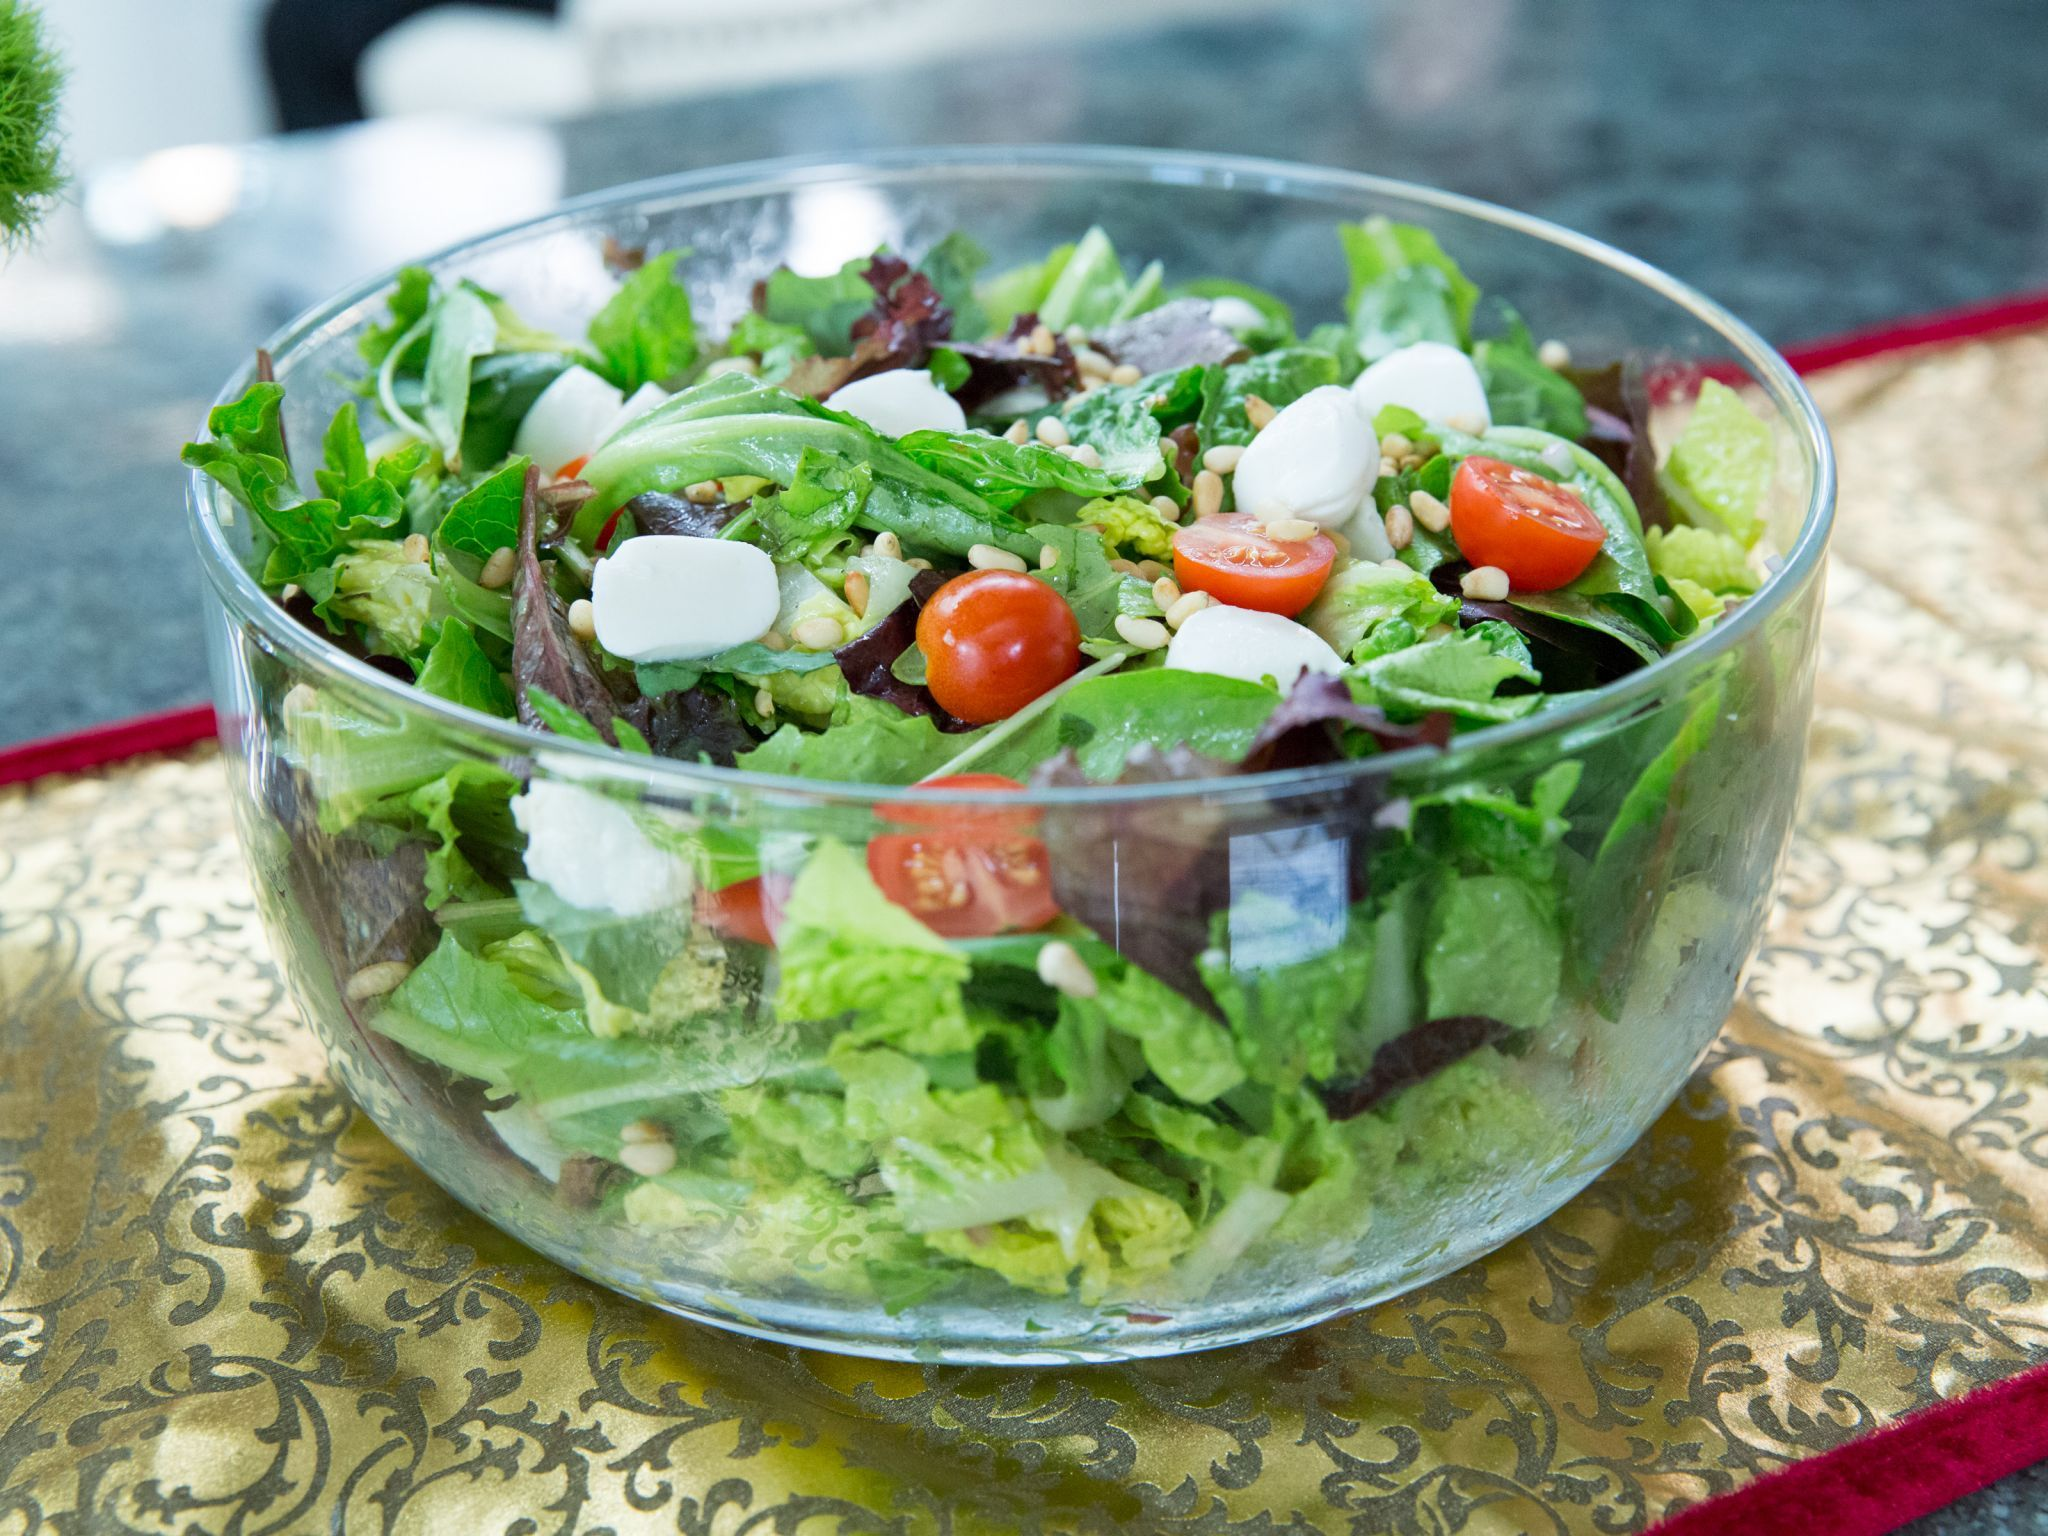 Festive Salad With Tomatoes Basil And Mozzarella In A Creamy Vinaigrette Recipe Food Network Recipes Salad Valerie S Home Cooking Recipes